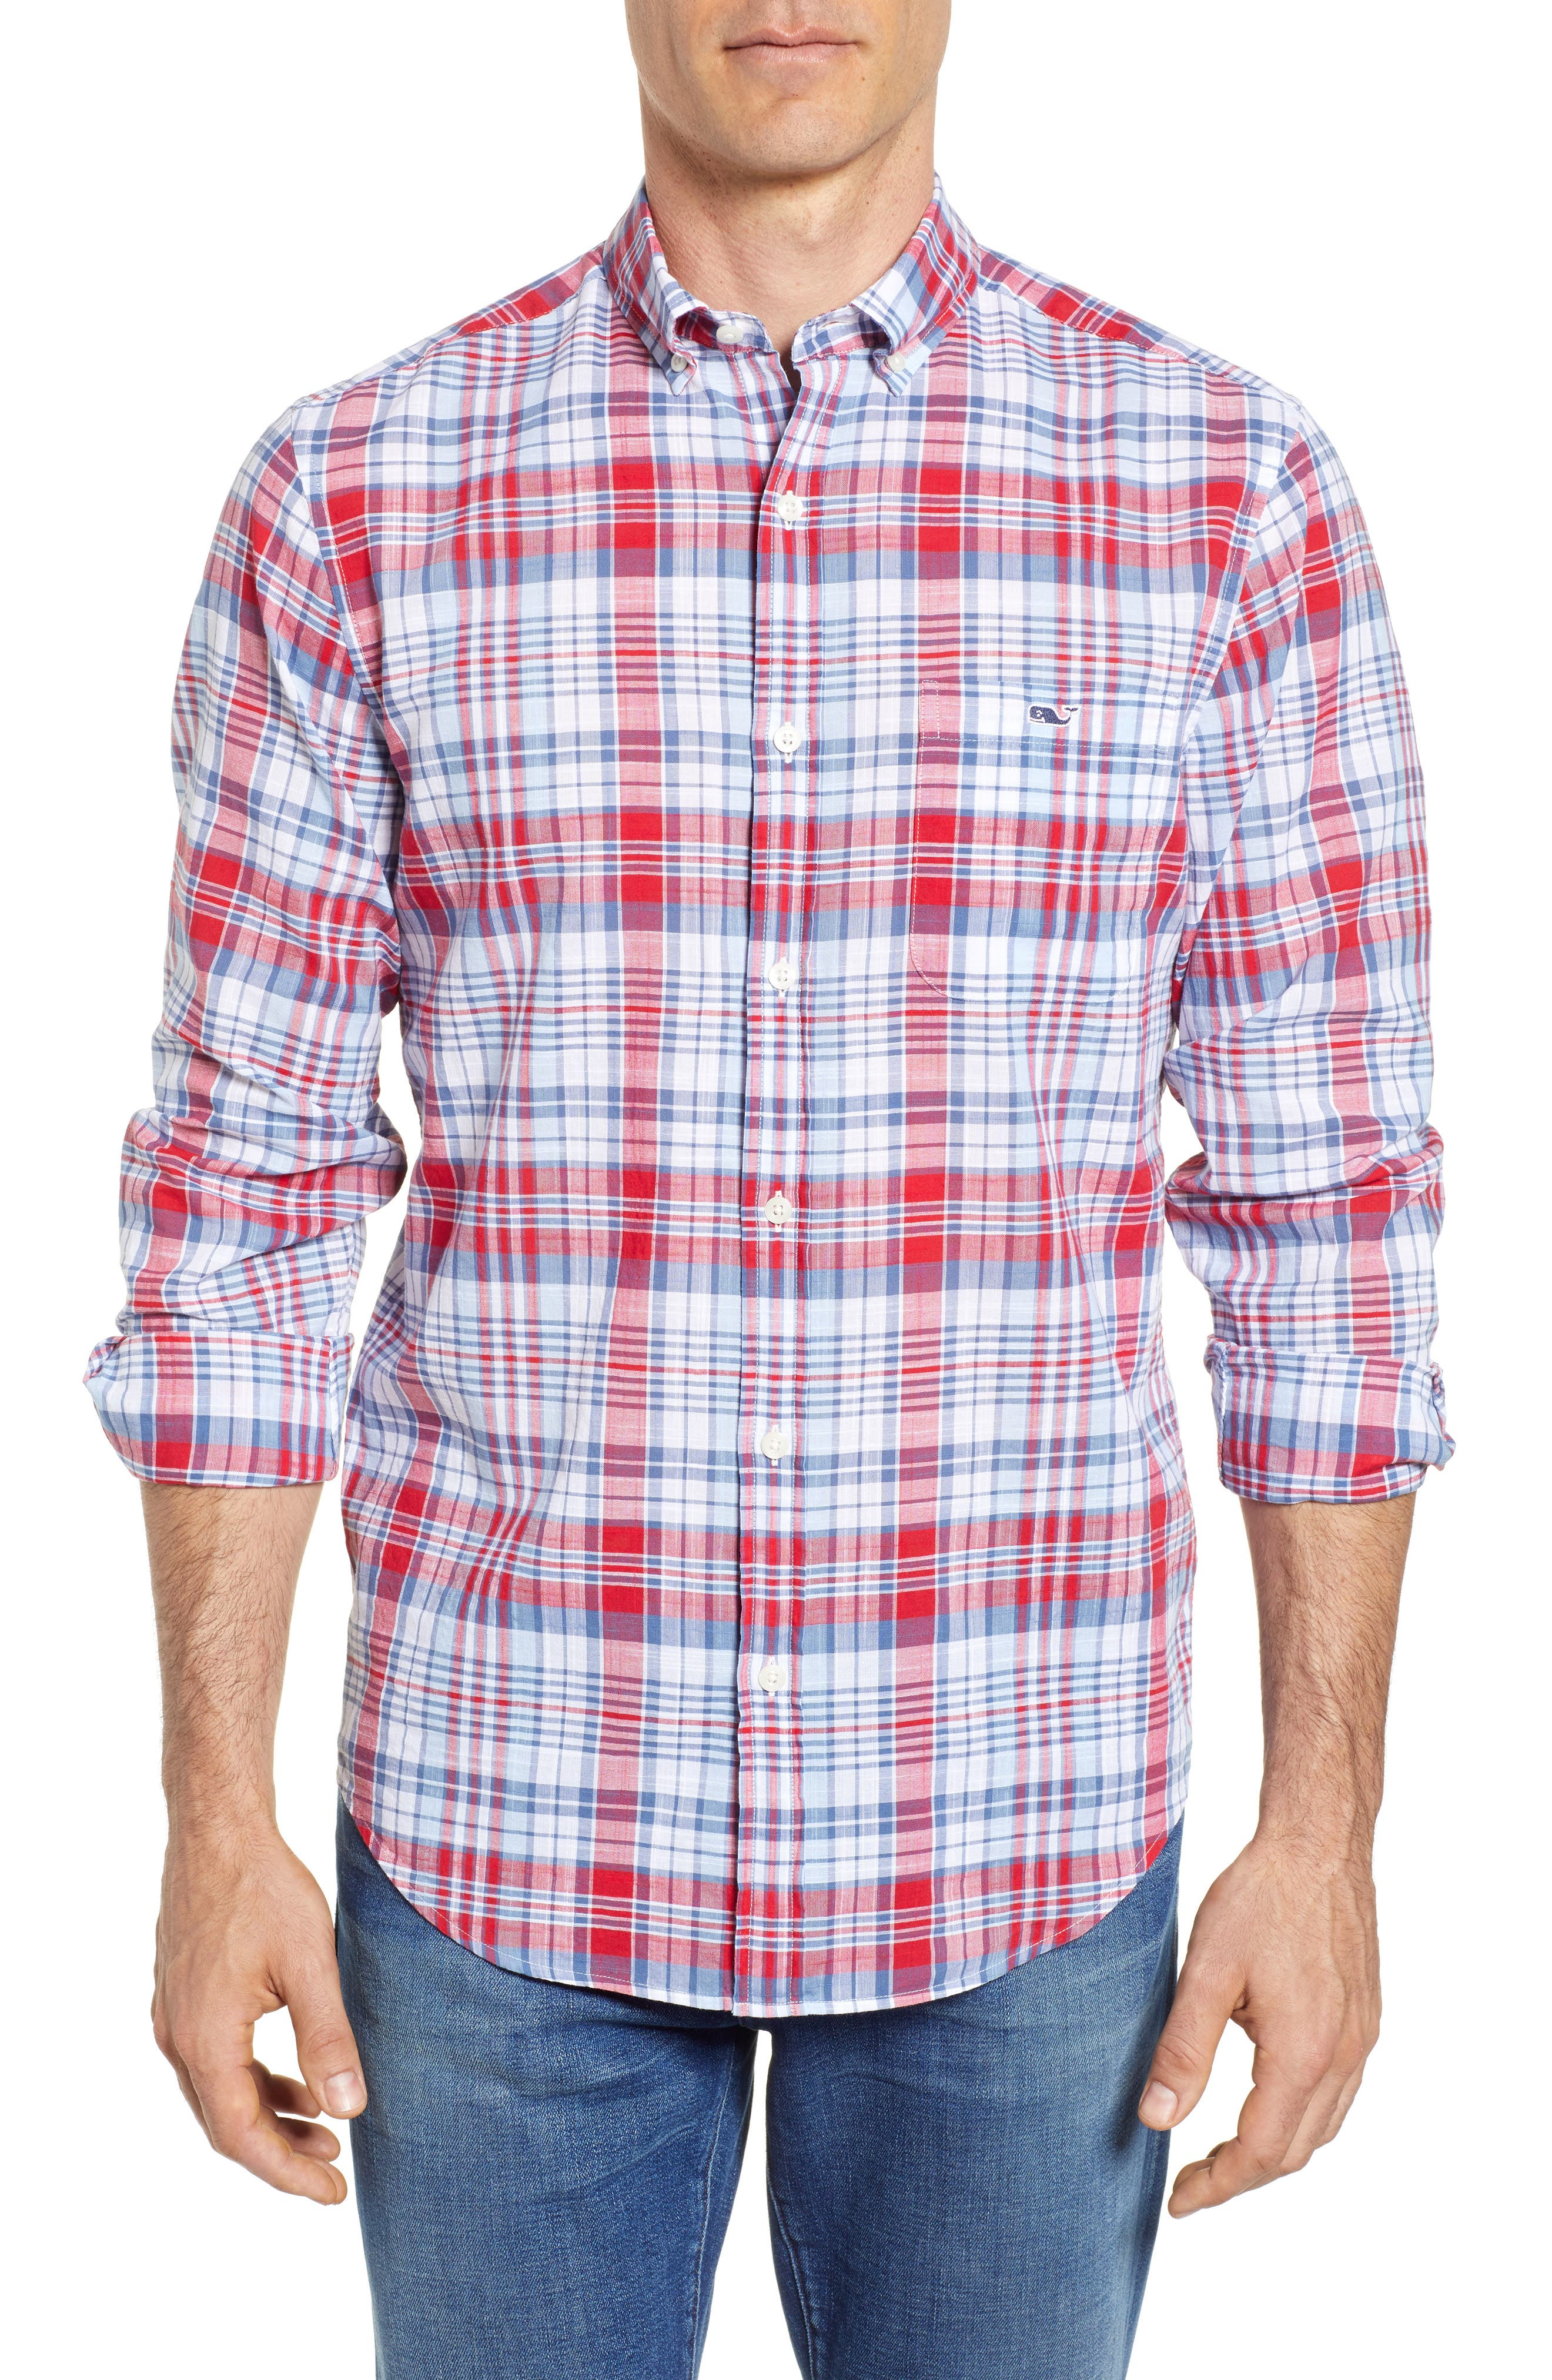 Firework Plaid Tucker Classic Fit Sport Shirt,                             Main thumbnail 1, color,                             Lighthouse Red